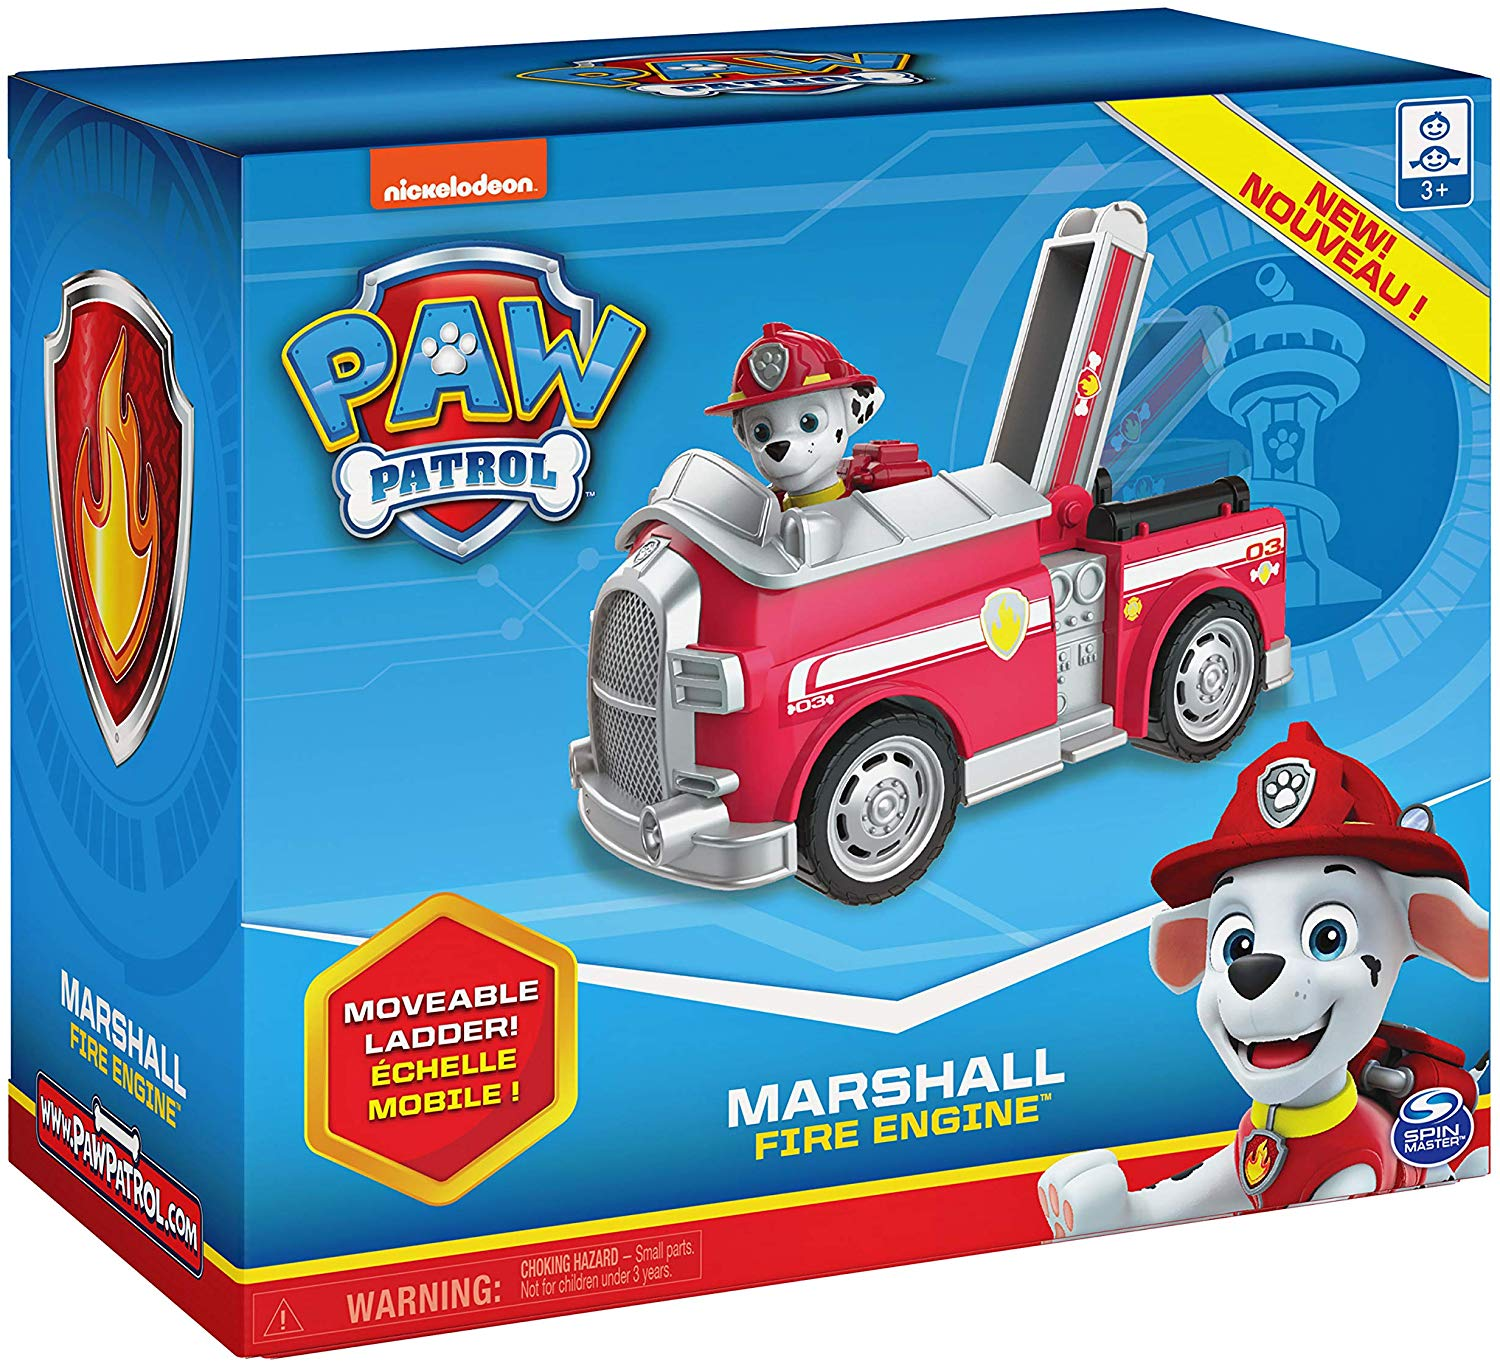 Paw Patrol Marshall Fire Engine Vehicle with Collectible Figure